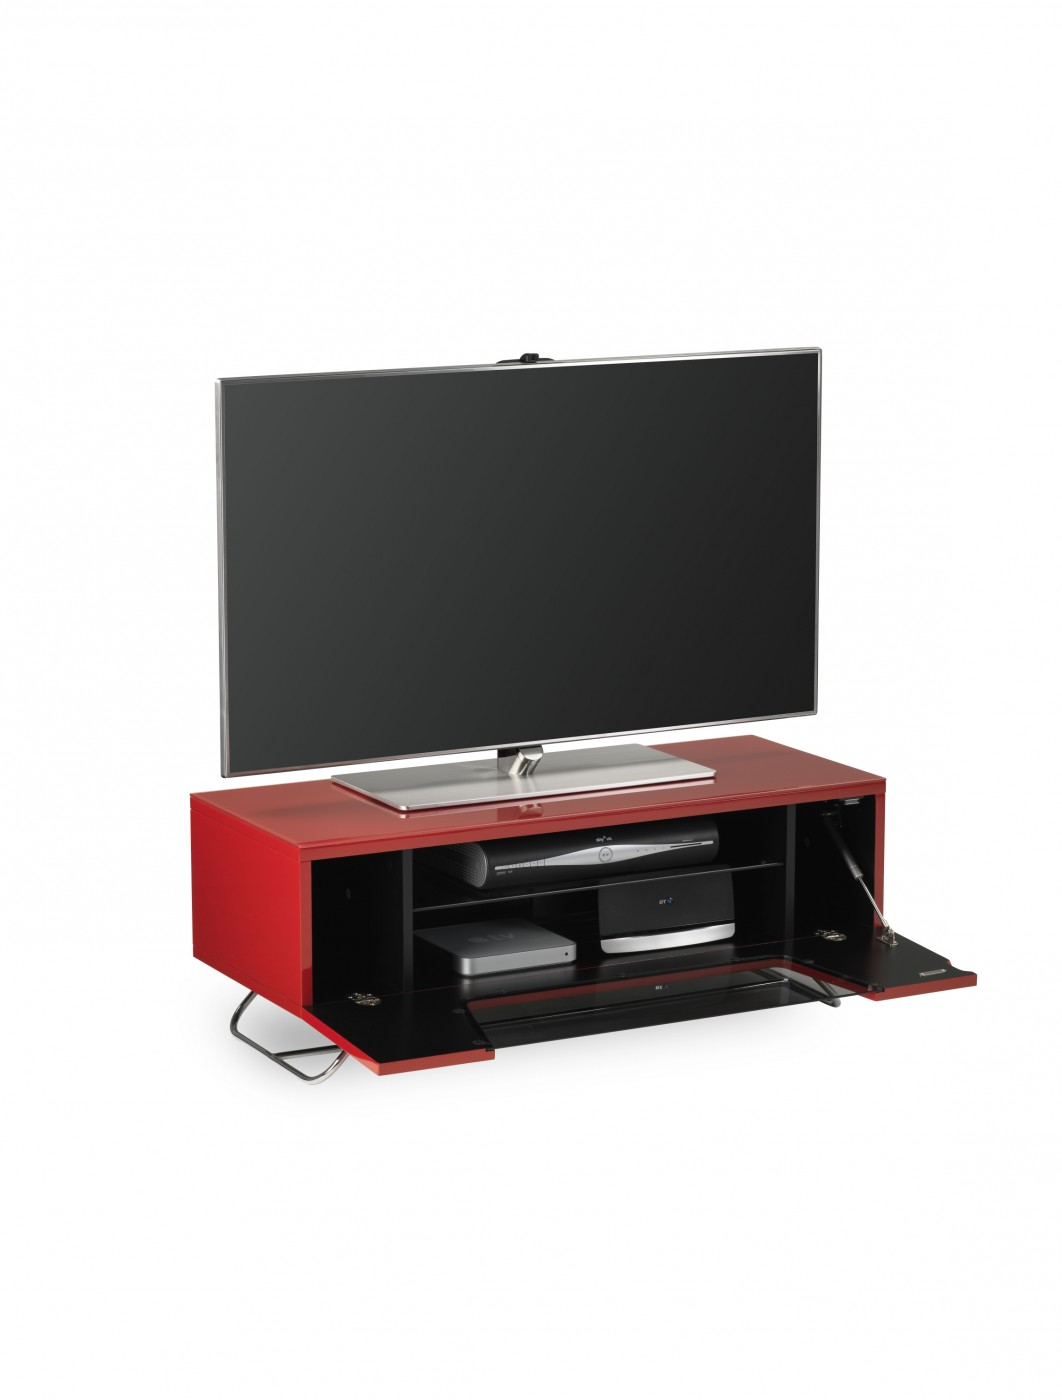 Alphason Chromium 2 TV Stand in Red CRO2-1000CB-RED